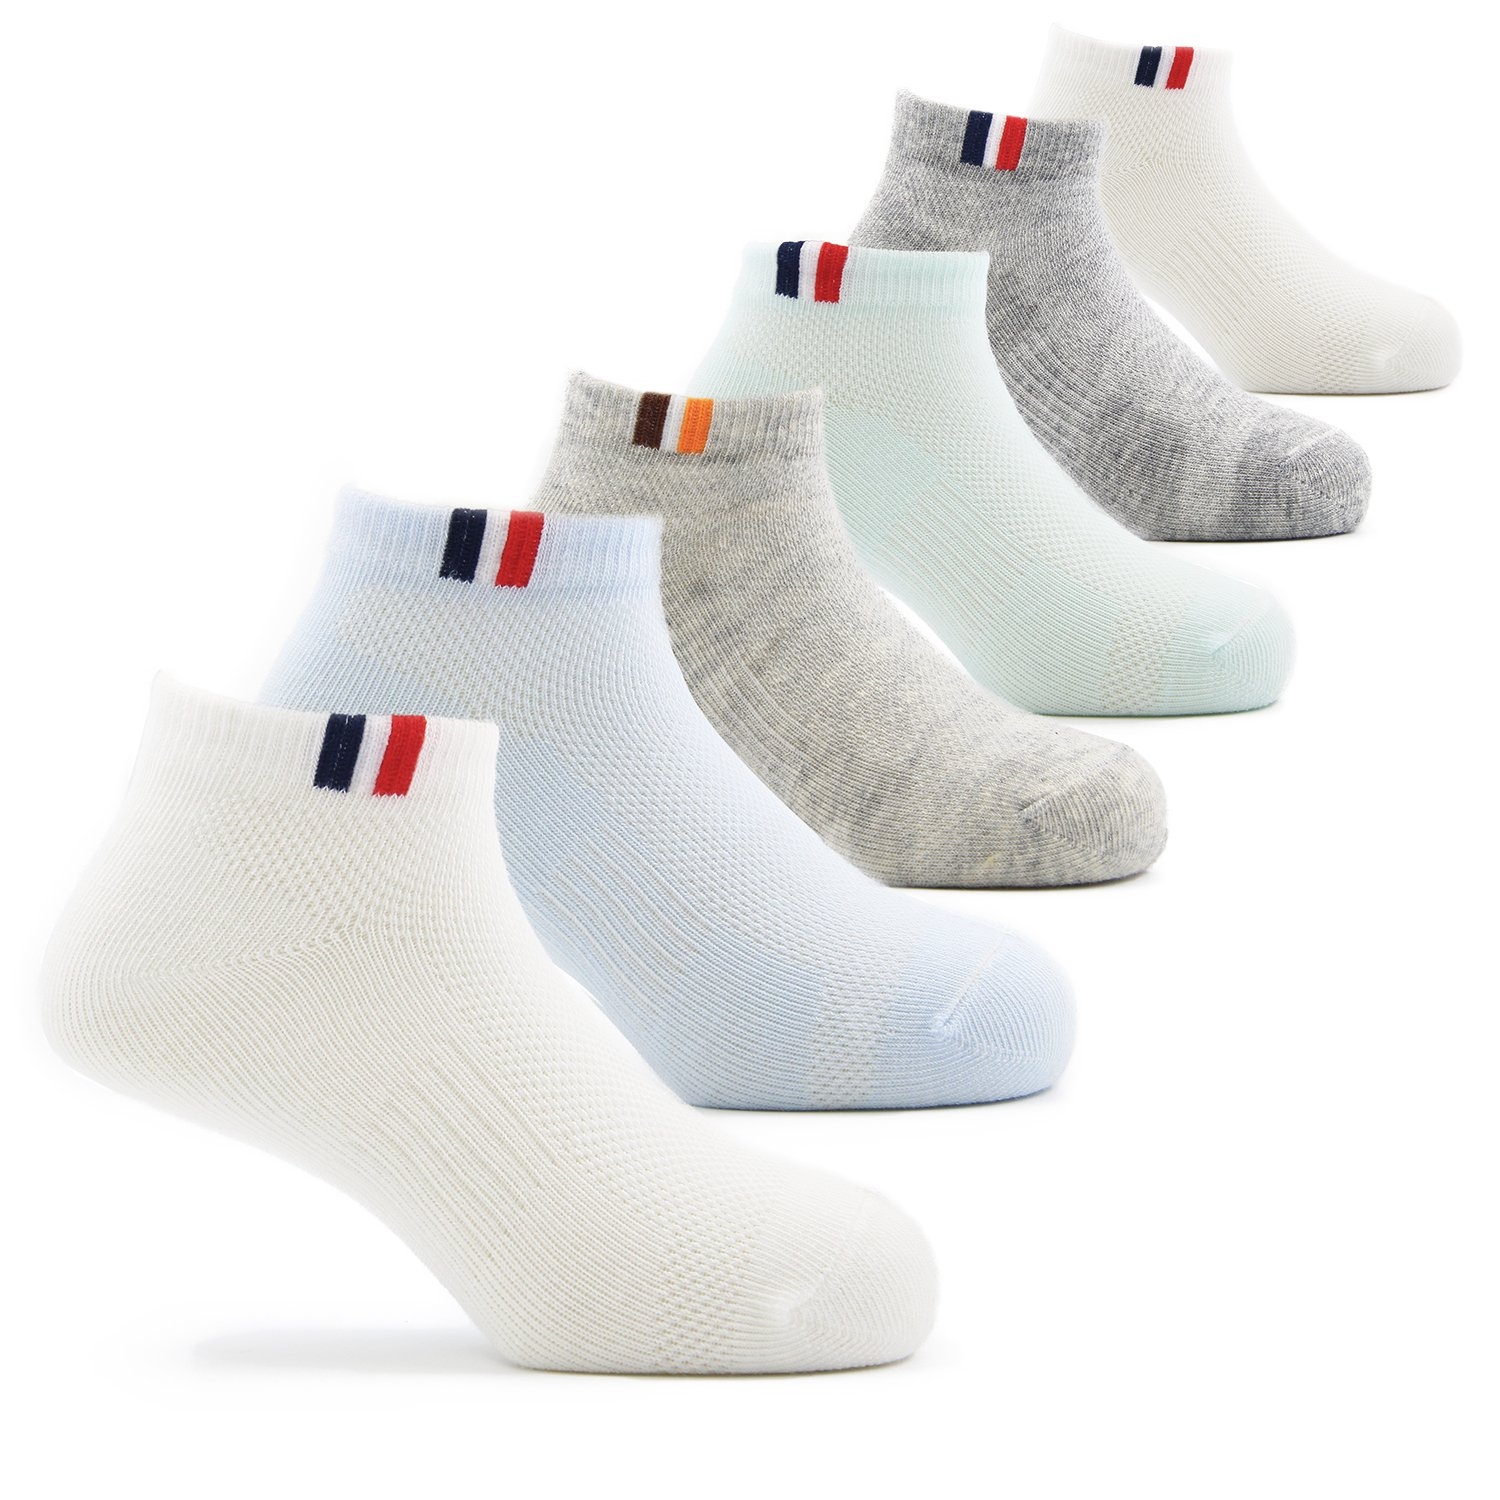 Boys Cotton Ankle Socks Kids Short Socks 6 Pack 6T